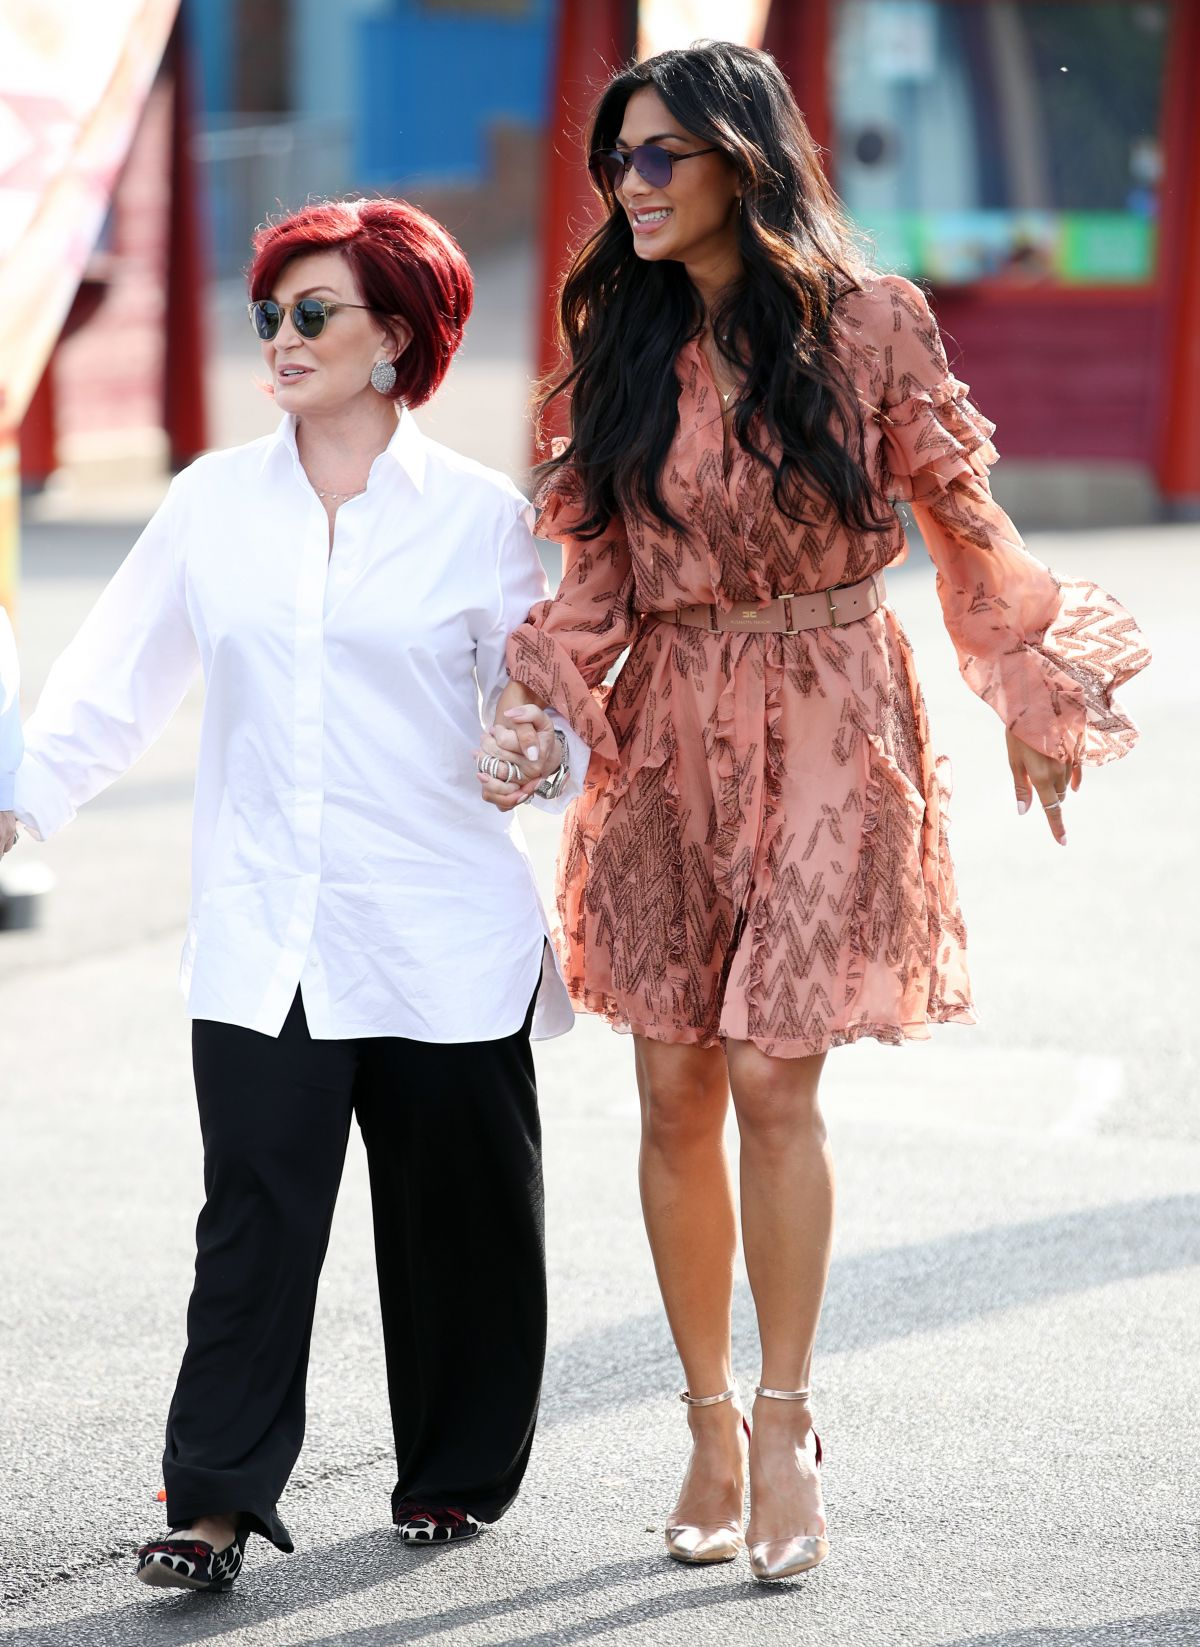 NICOLE SCHERZINGER and SHARON OSBOURNE at The X Factor Auditions in Surrey 07/09/2017